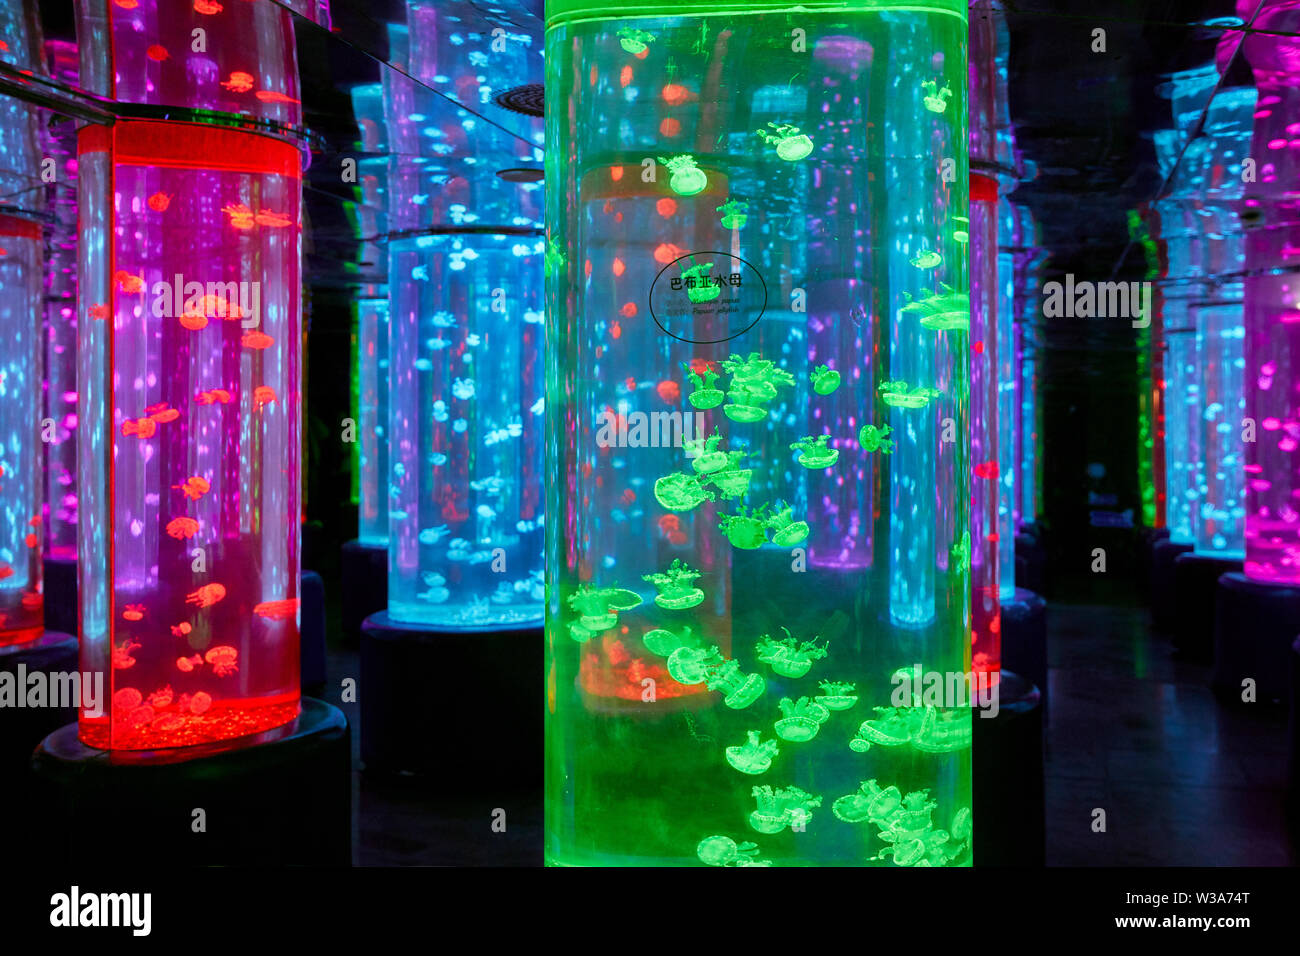 Colorful tanks with jellyfish in Dream Aquarium at OCT Harbour. Shenzhen, Guangdong Province, China. - Stock Image